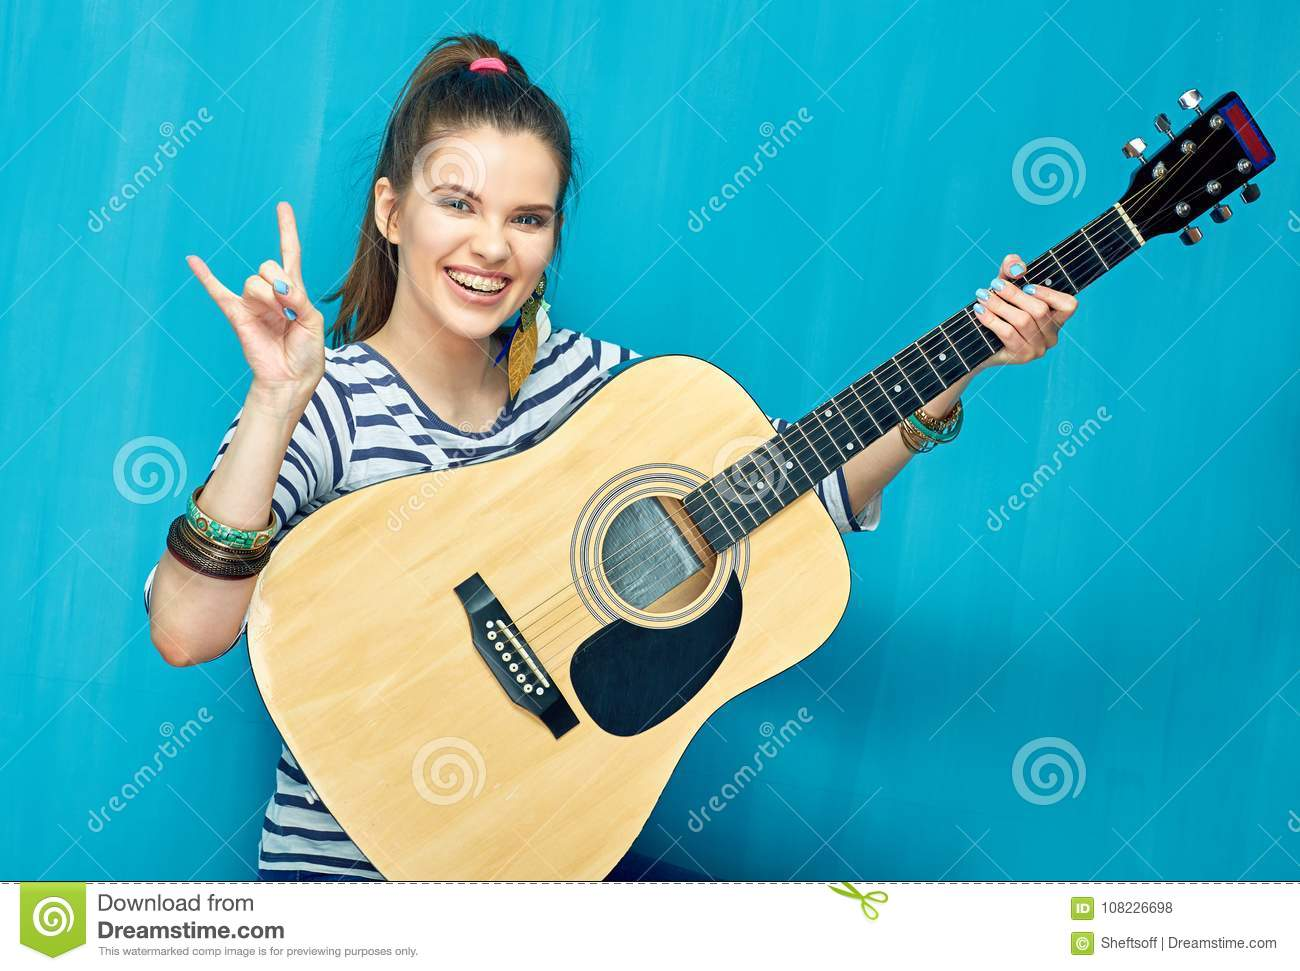 girl guitar stock photos royalty free pictures. Black Bedroom Furniture Sets. Home Design Ideas